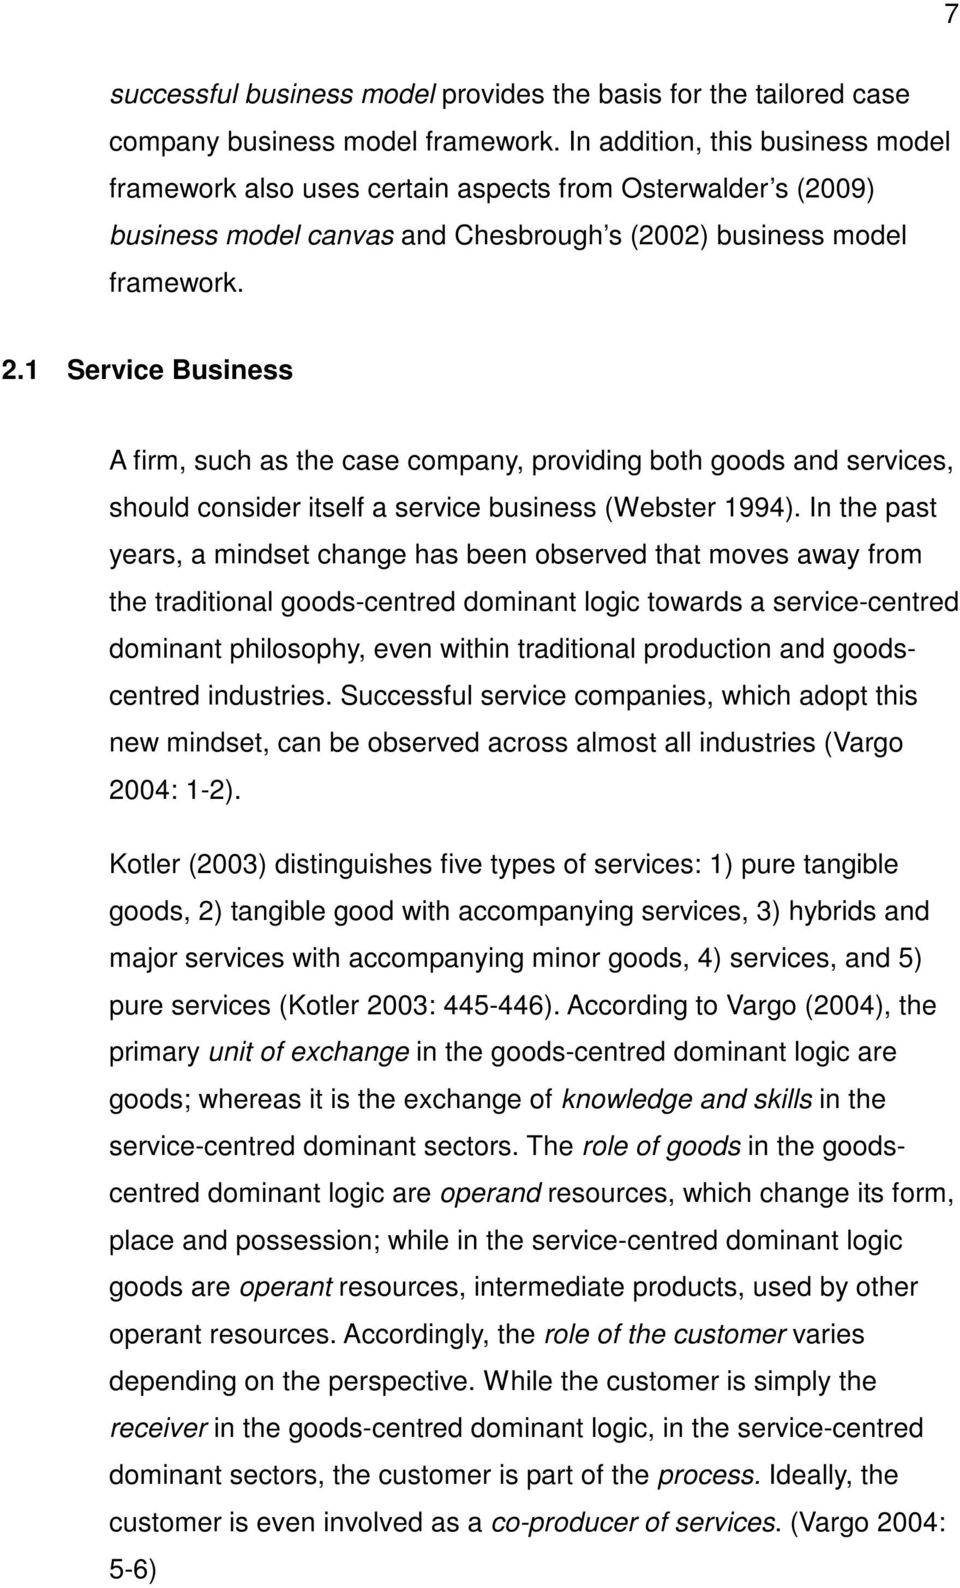 1 Service Business A firm, such as the case company, providing both goods and services, should consider itself a service business (Webster 1994).